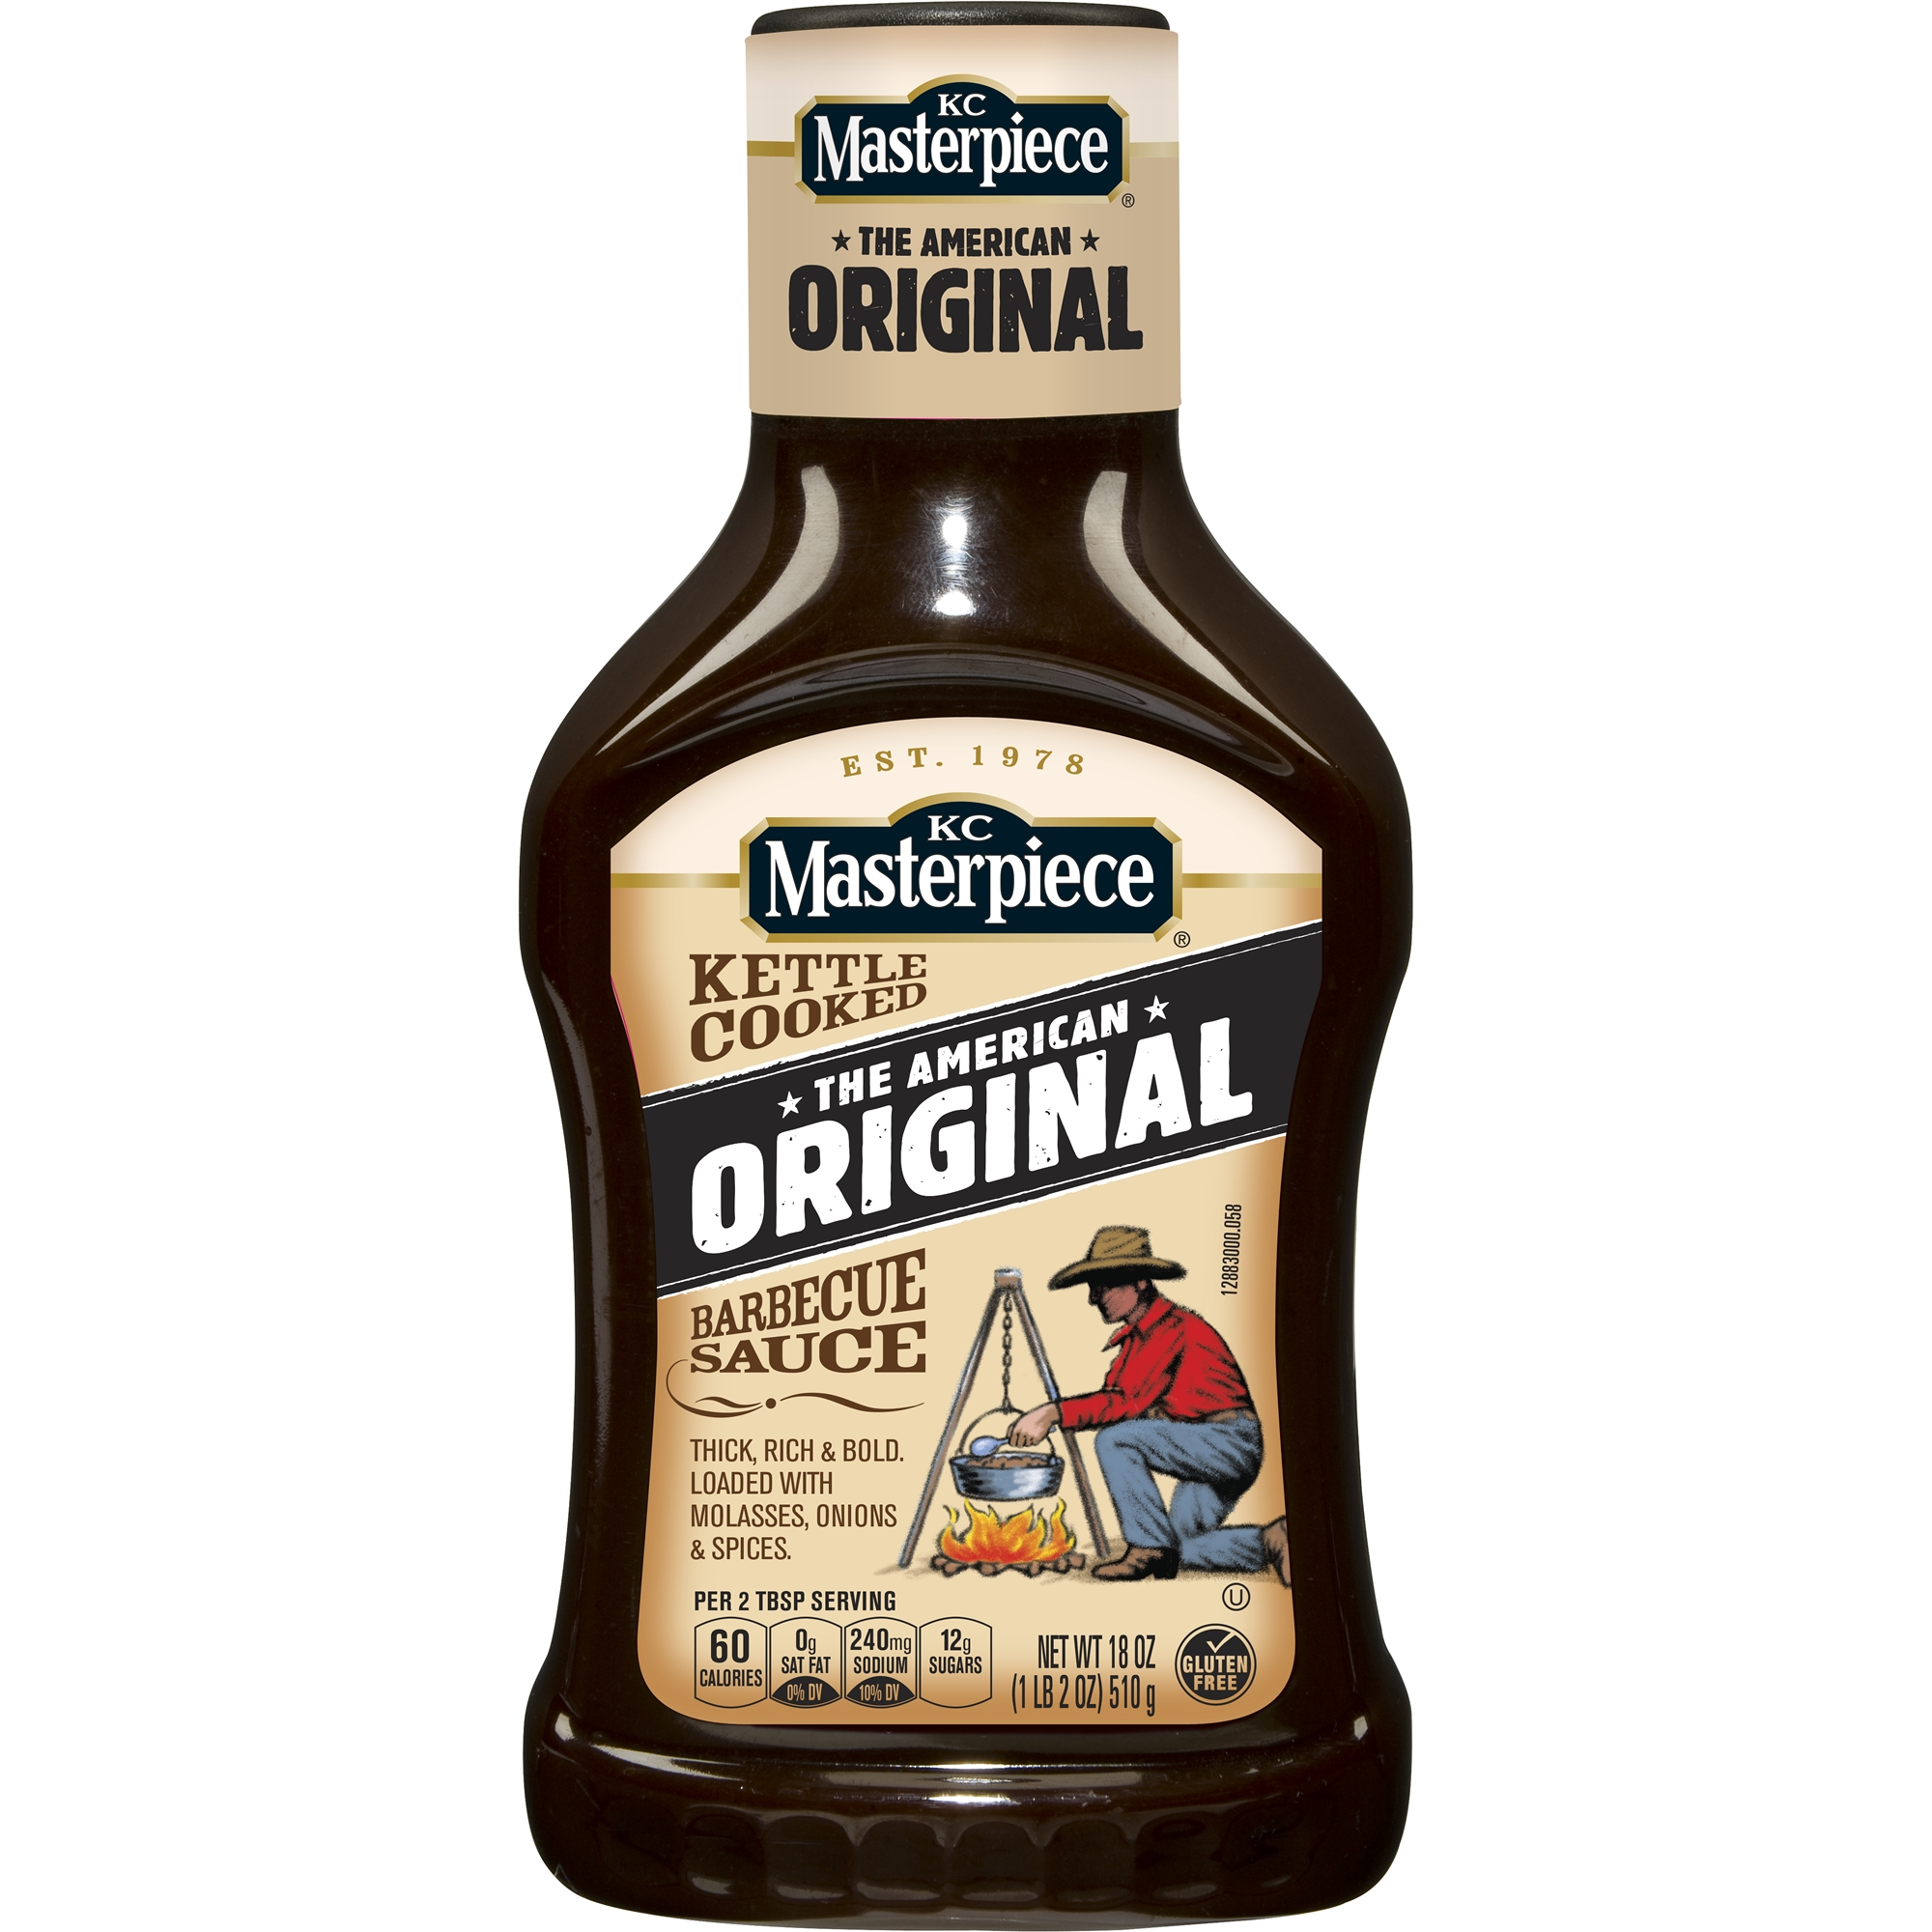 KC Masterpiece Original Barbecue Sauce, 18 oz